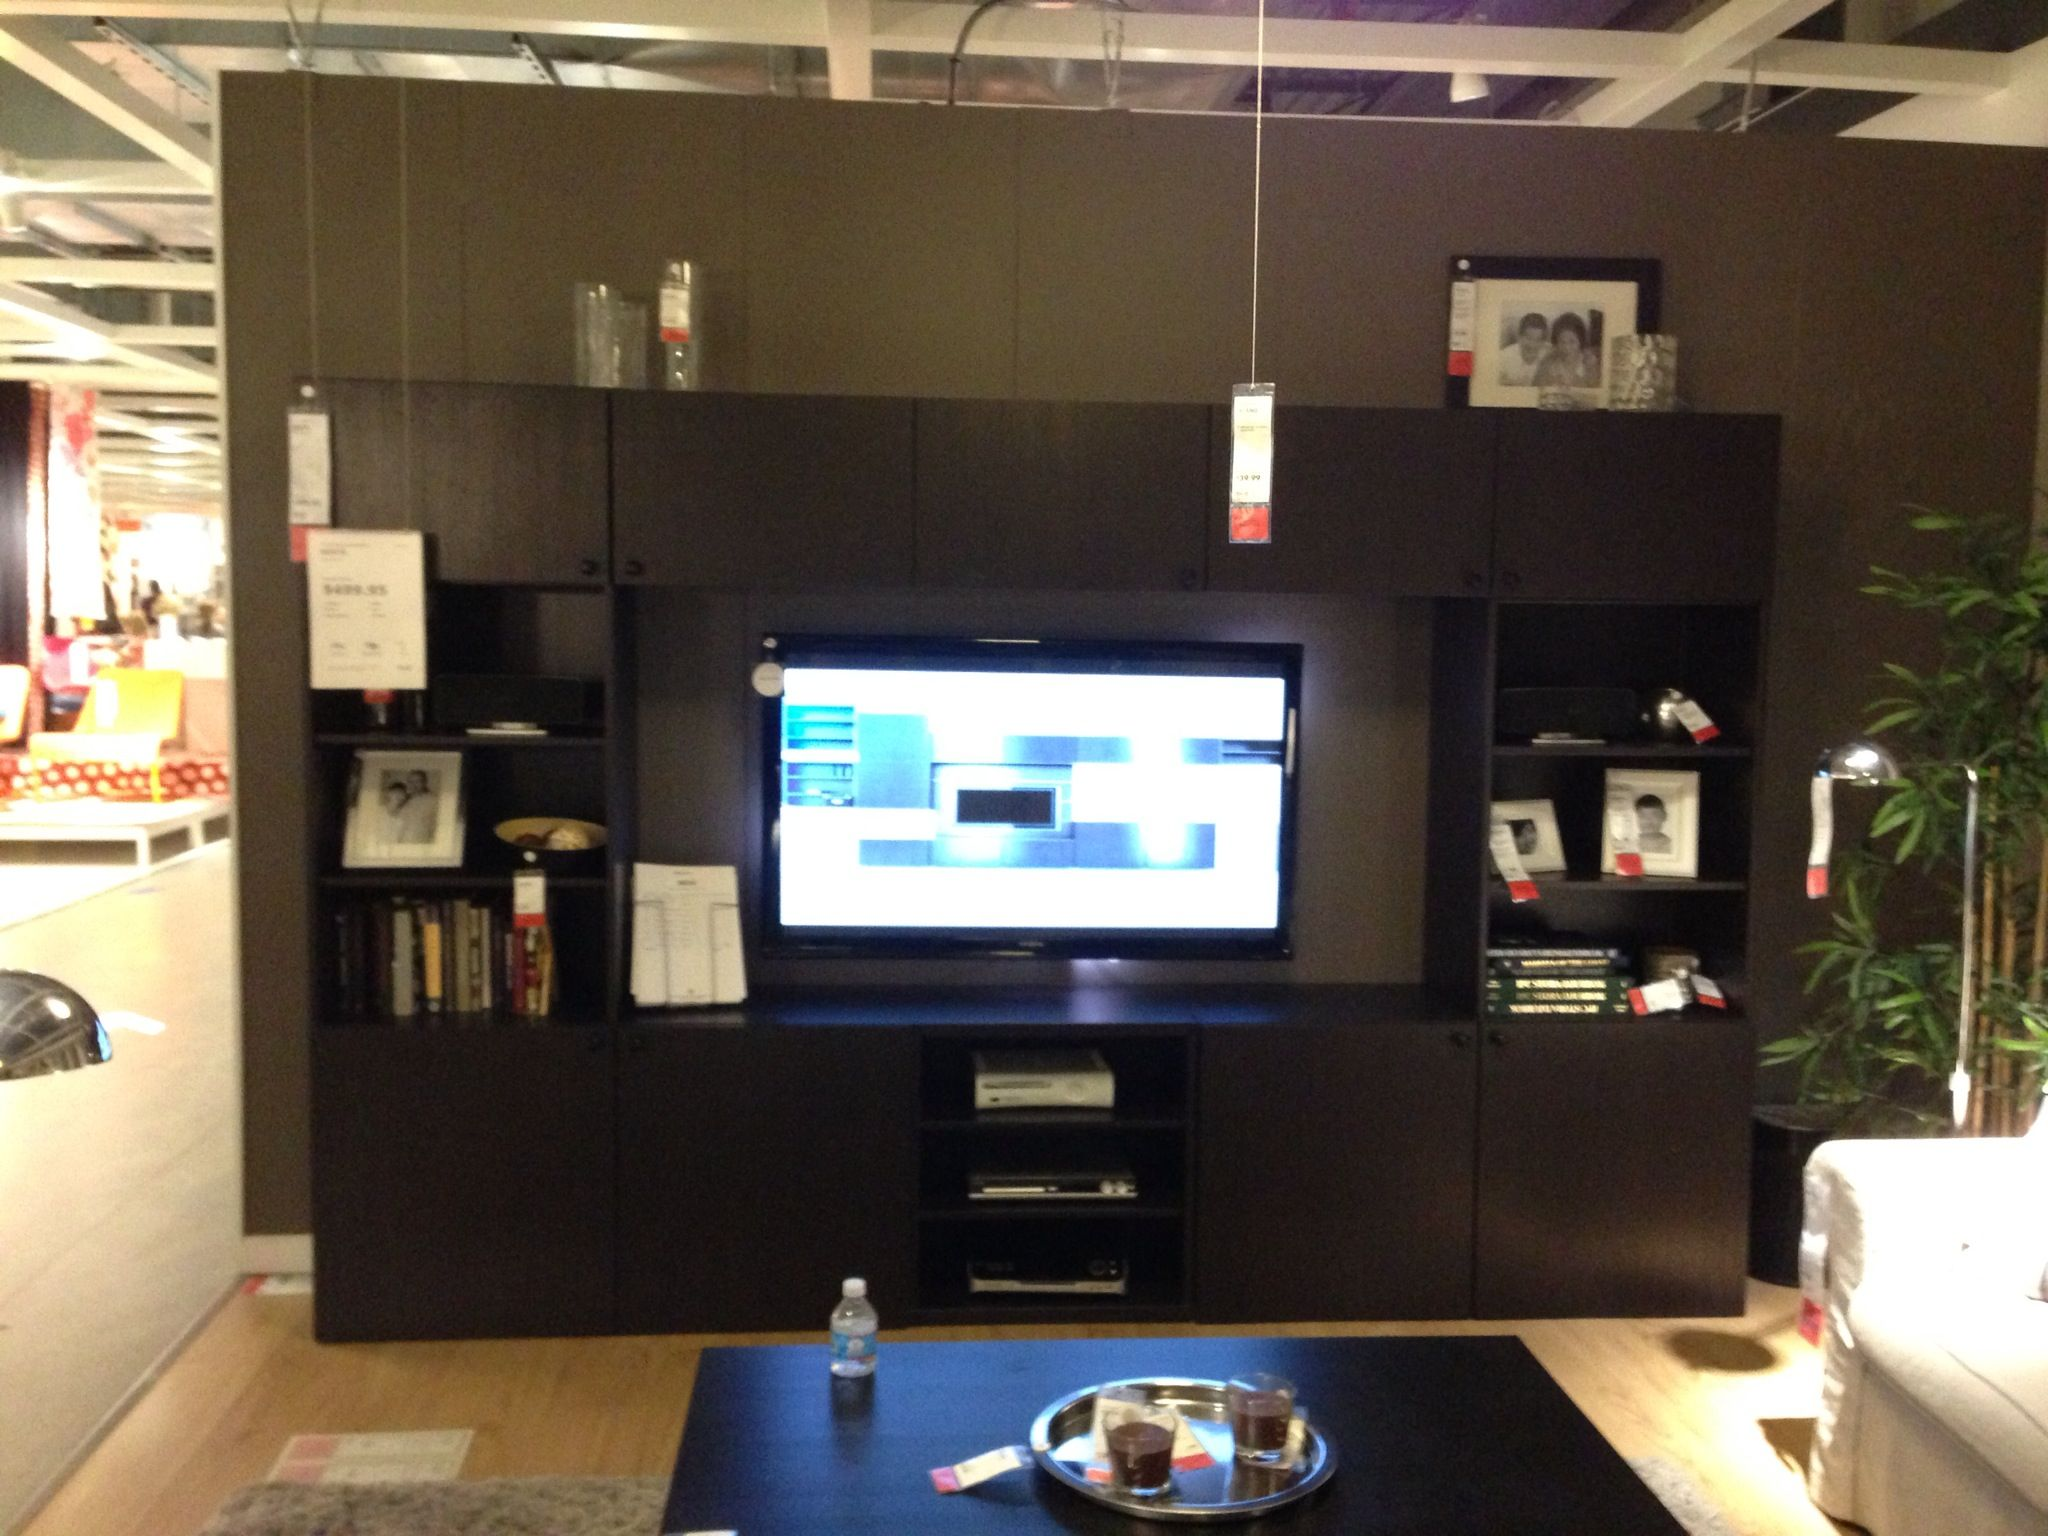 Dream entertainment center at Ikea for $500! | Family Room ...